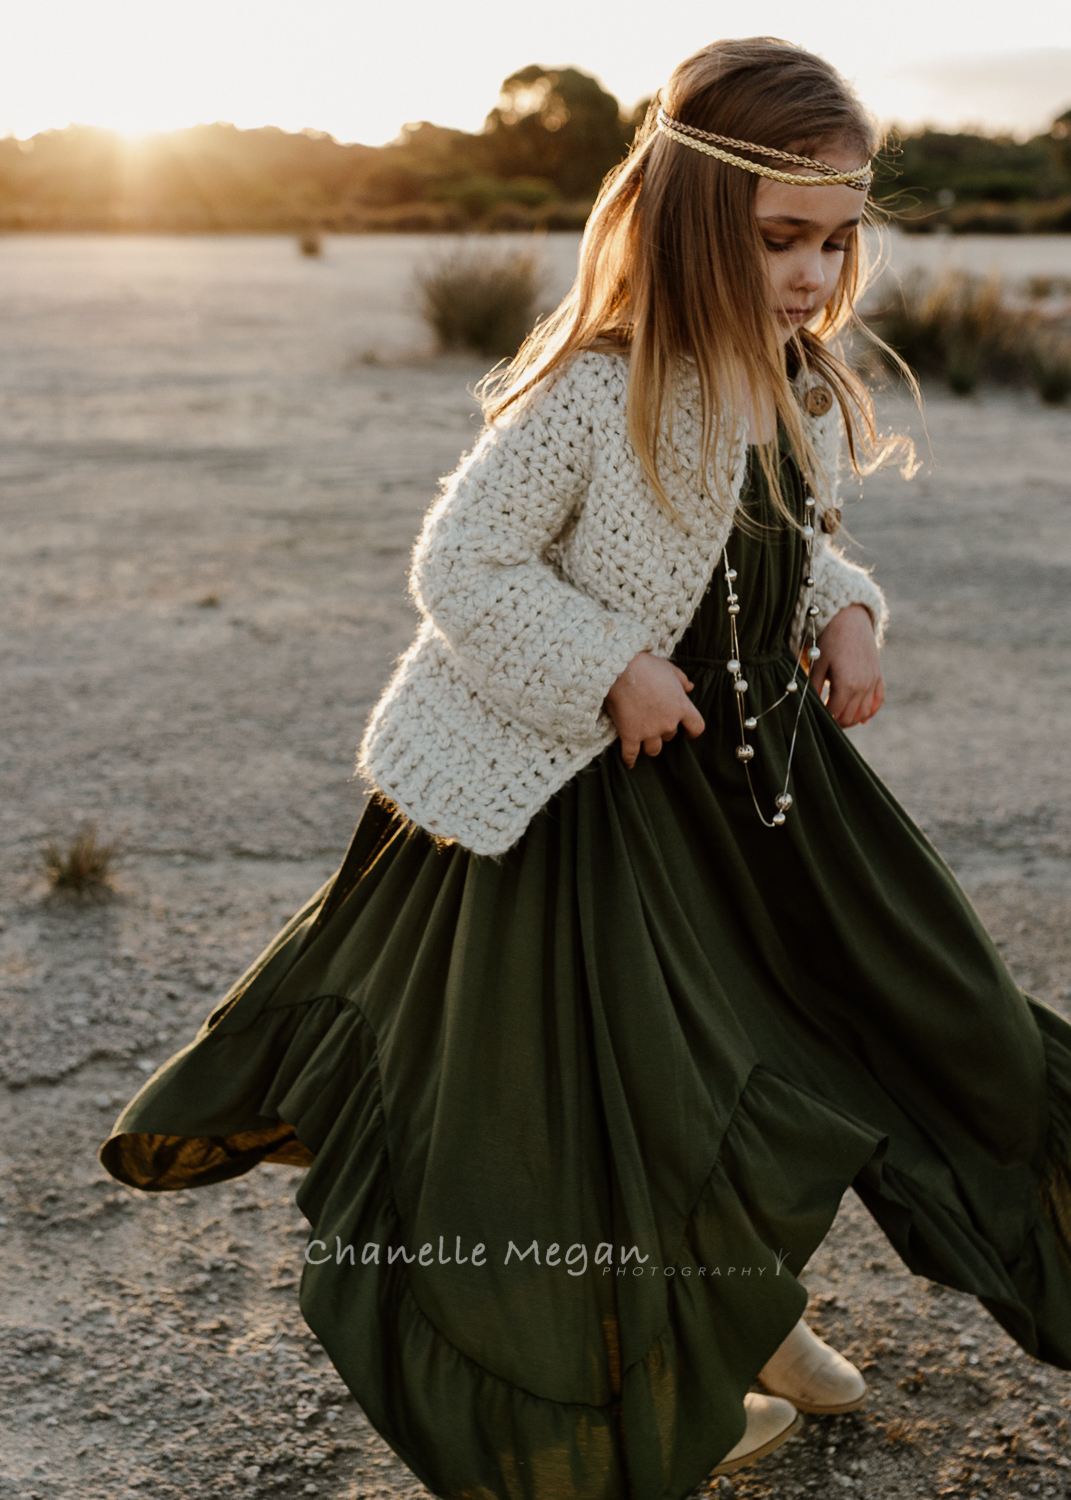 Chanelle Megan Photography captures candid photography of your children